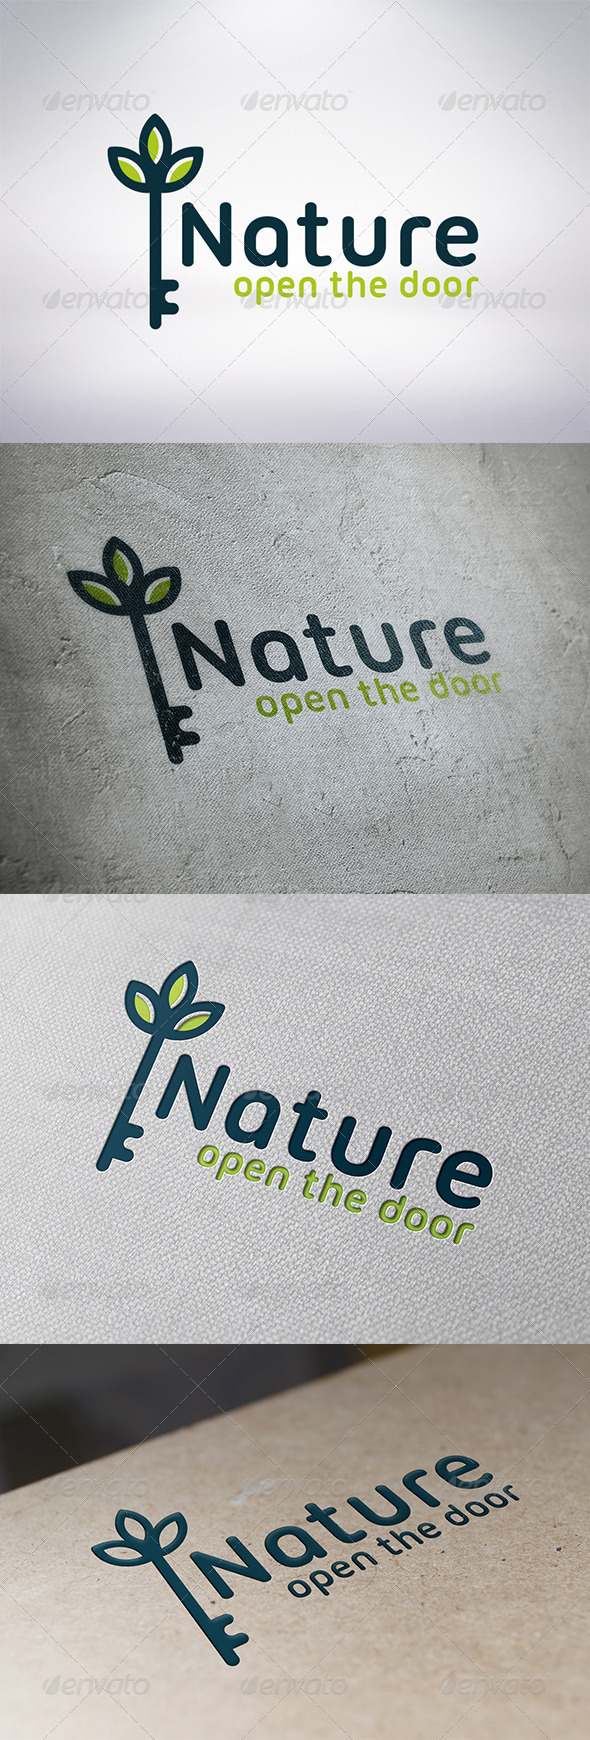 Natural Key Logo Template - Nature Logo Templates